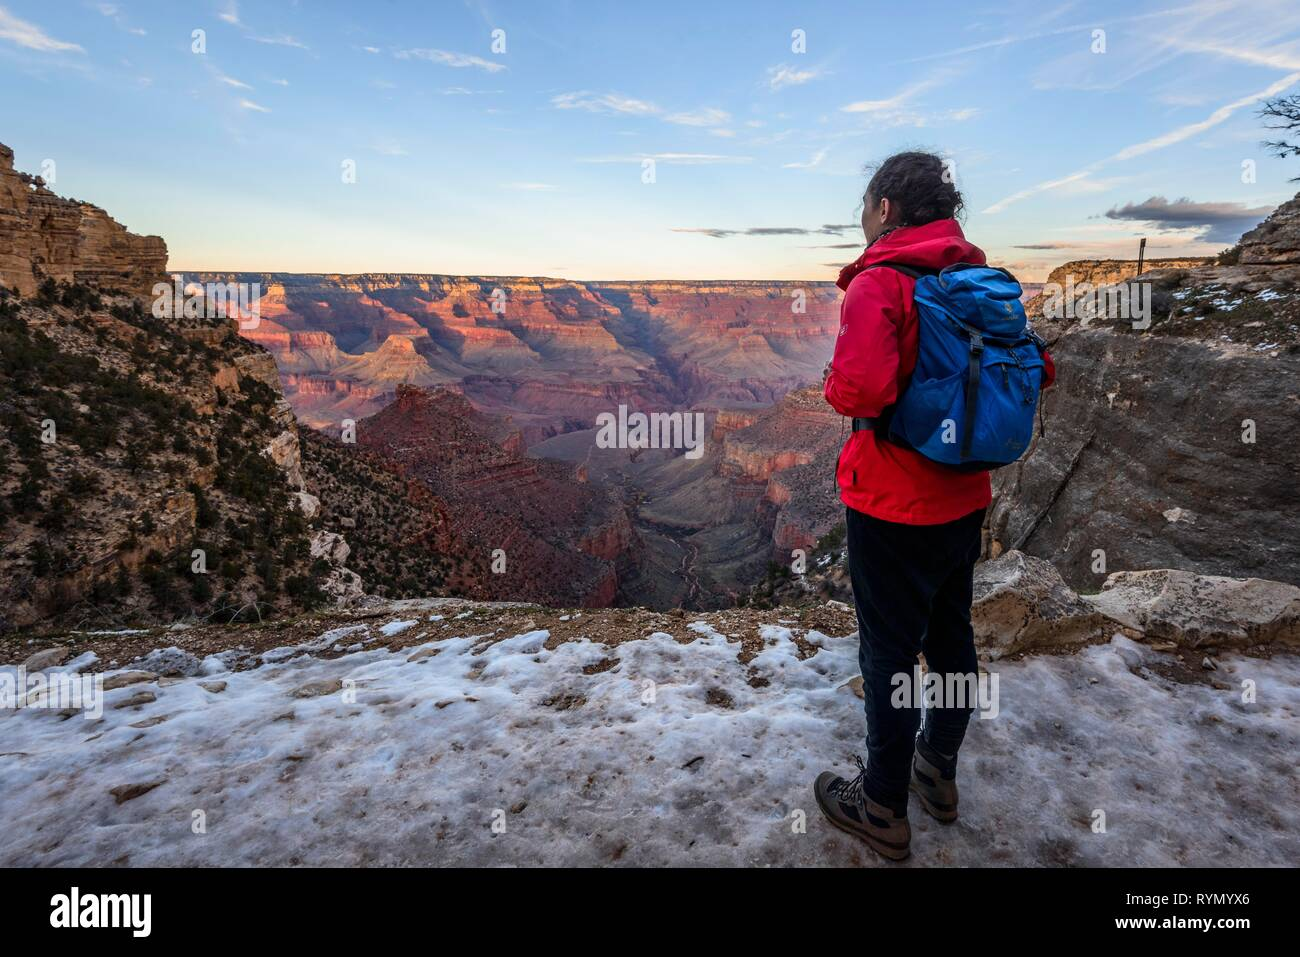 Young woman looking into the gorge of the Grand Canyon, view from the Bright Angel Trail, eroded rock landscape, South Rim - Stock Image